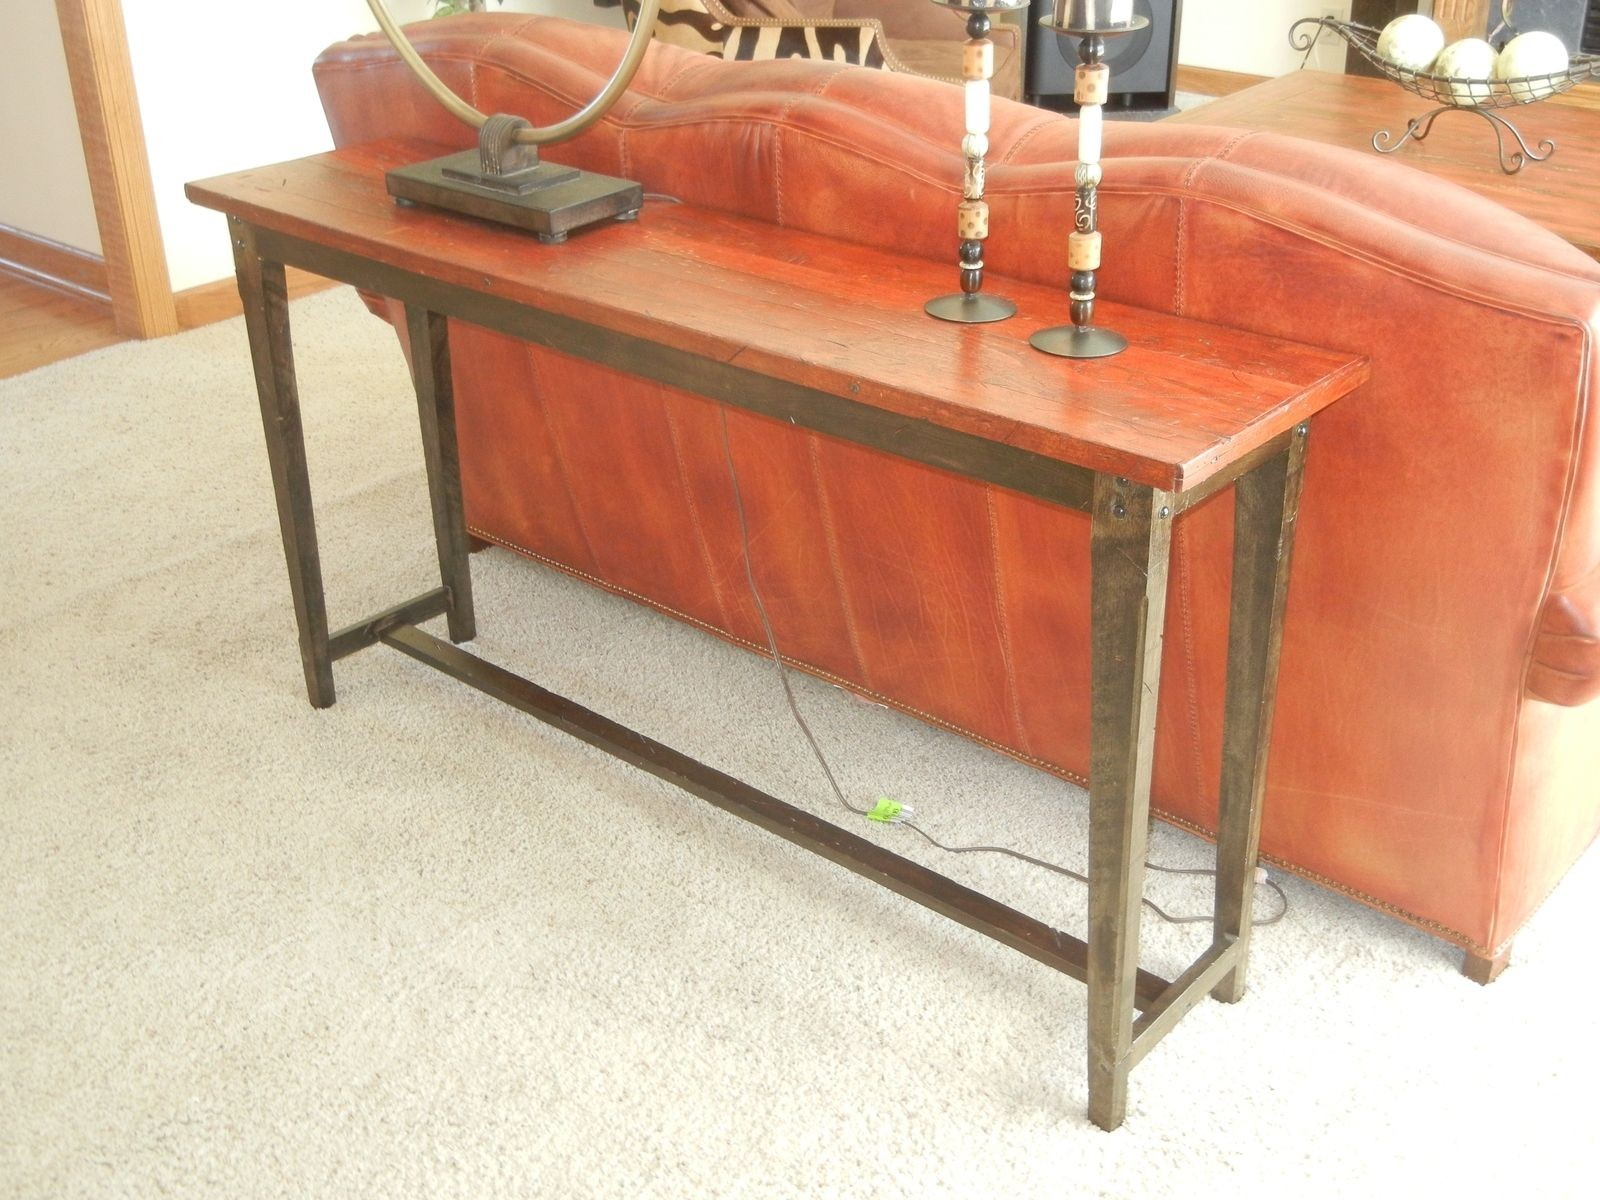 Reclaimed Wood sofa Table Lovely Beautiful Reclaimed Wood sofa Table for Your Contemporary sofa Portrait